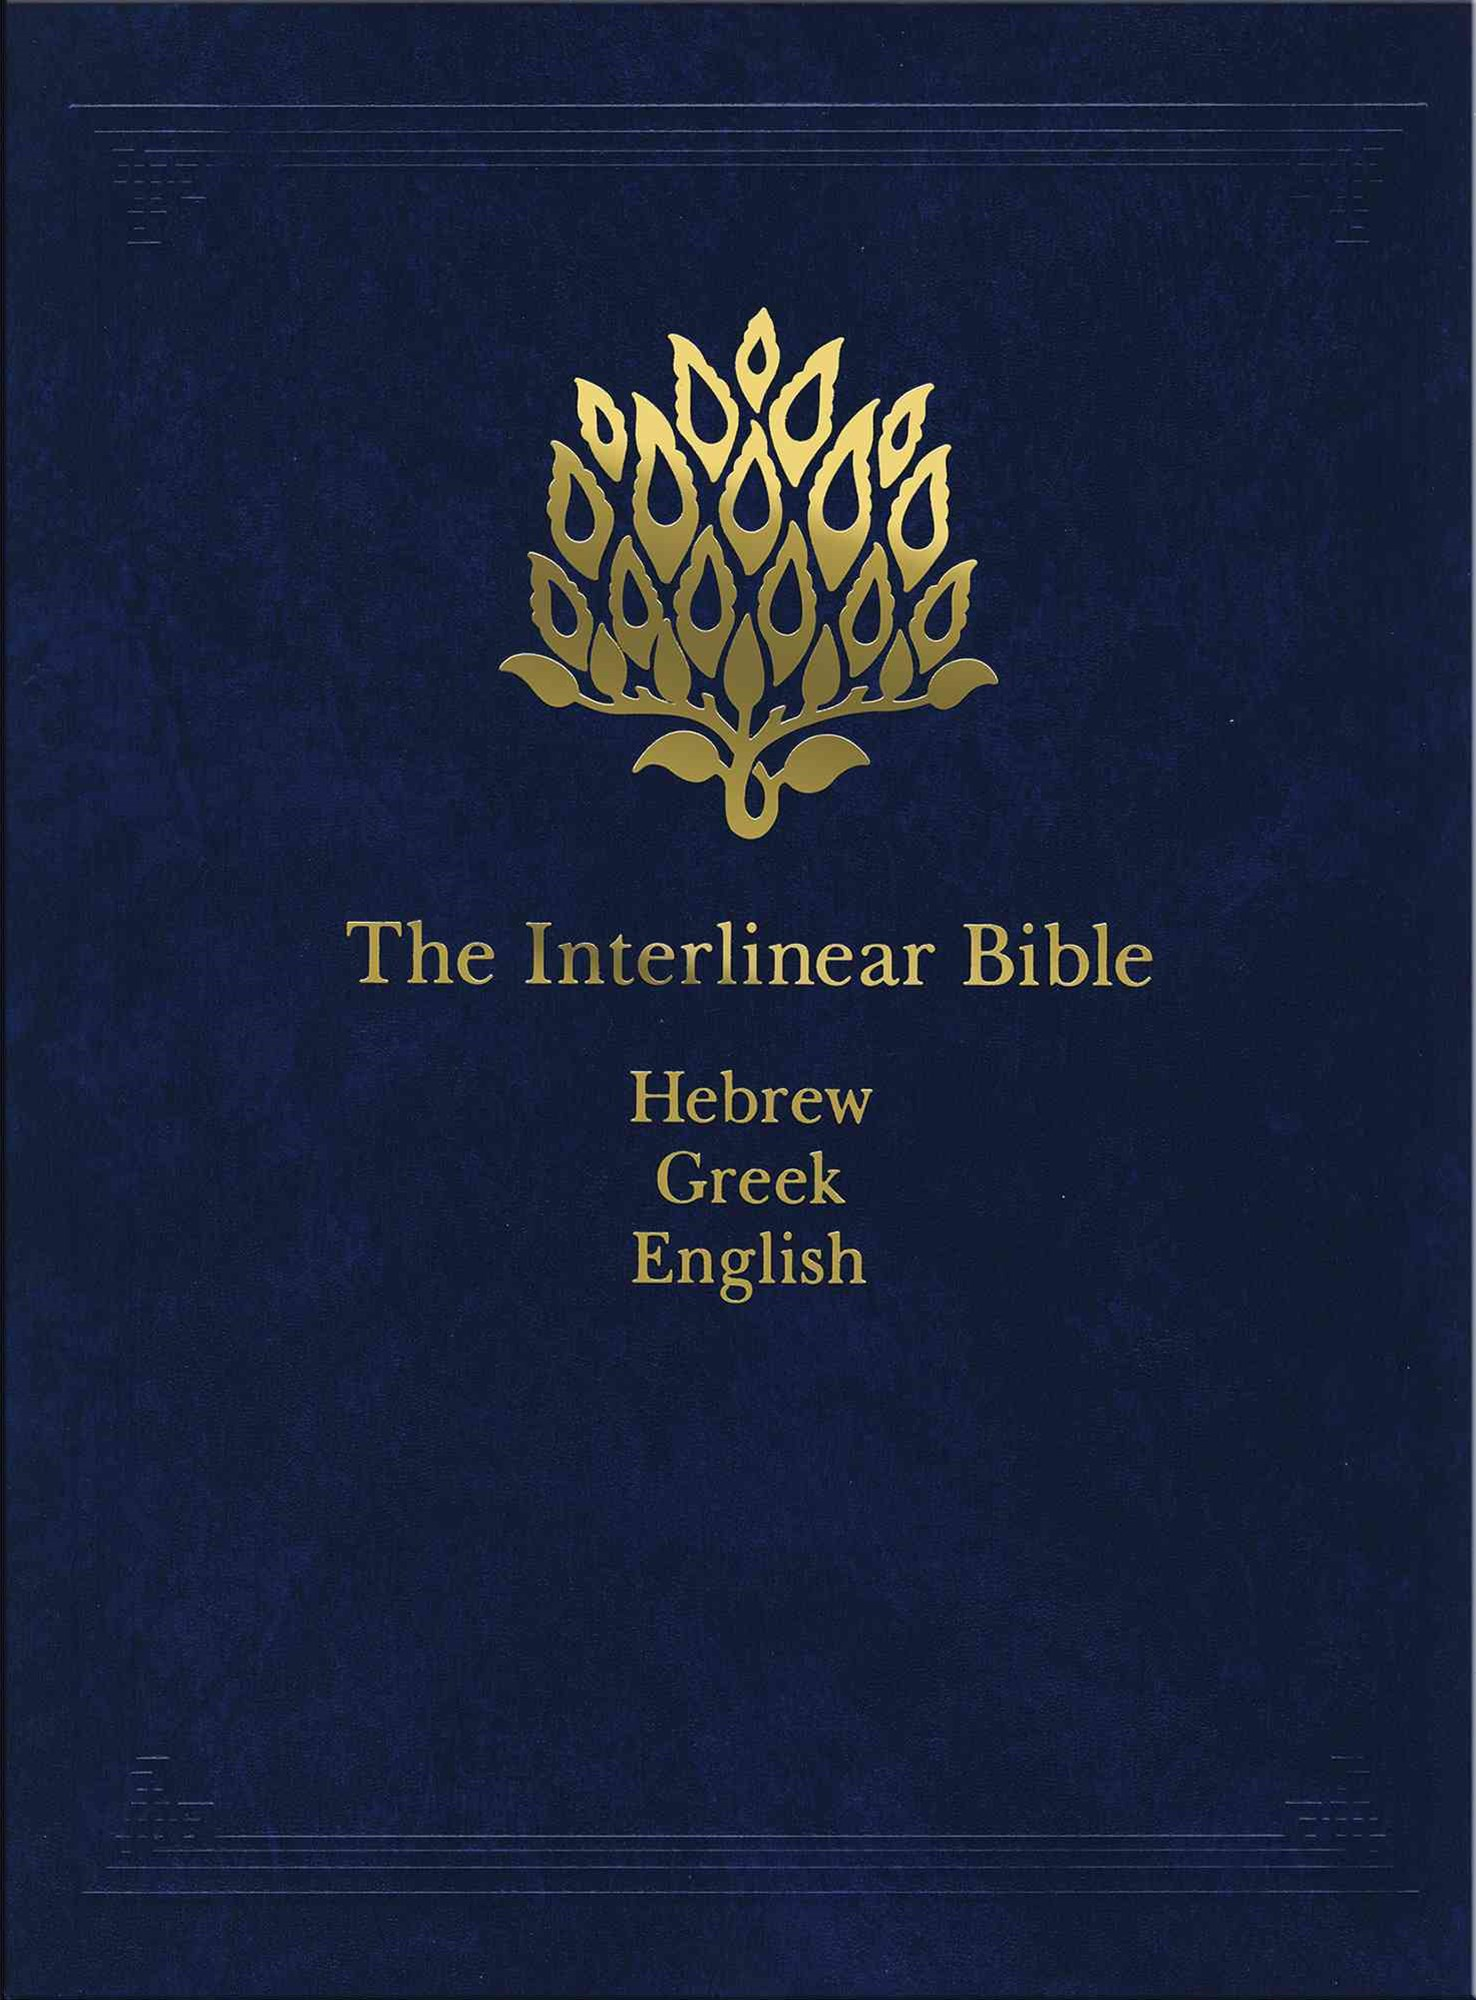 The Interlinear Bible Hebrew-Greek-English 1 Volume Edition with Strong's Concordance Numbers above